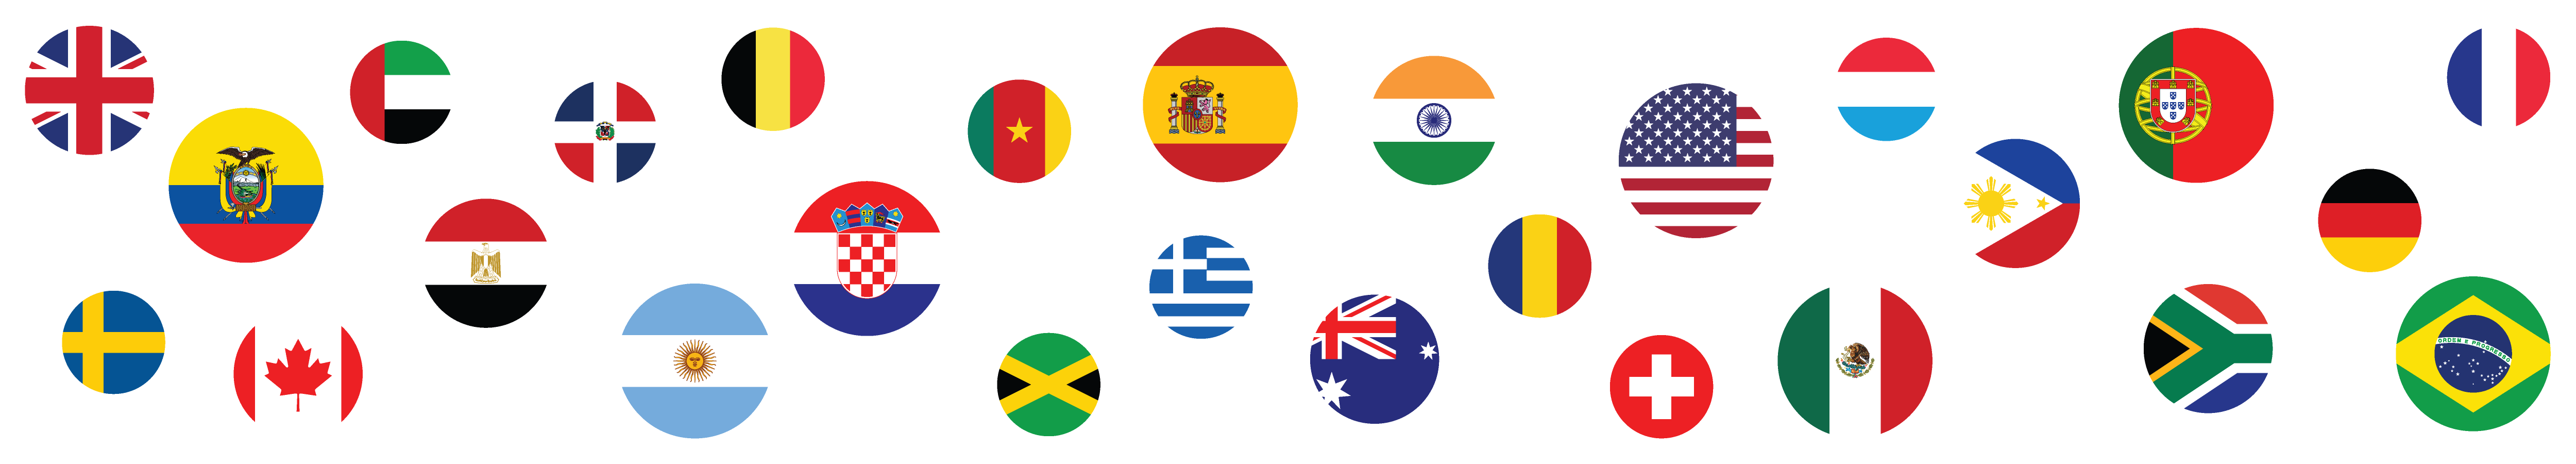 Sprite world flags